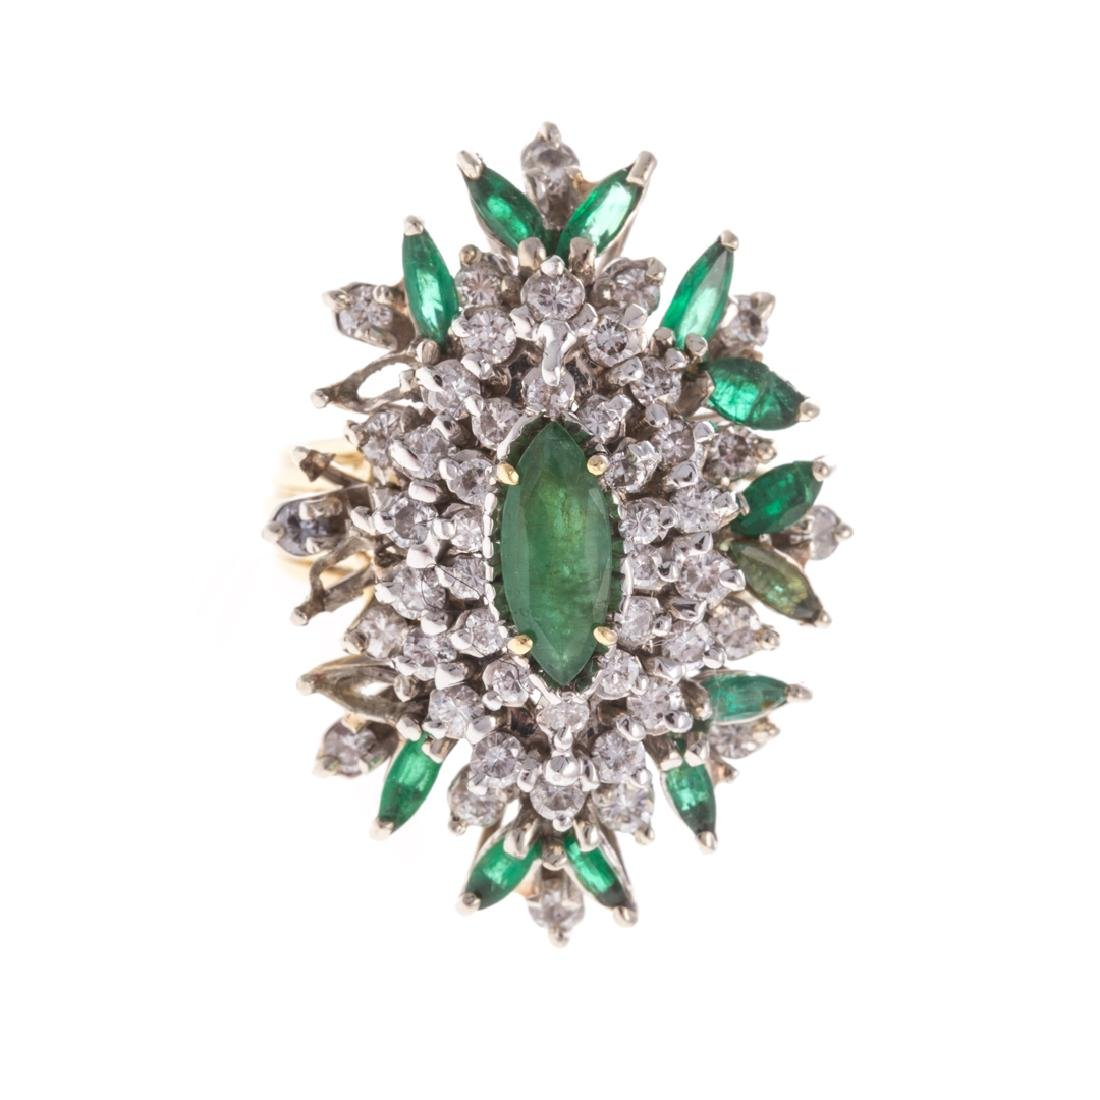 A Lady's 14K Emerald and Diamond Cocktail Ring